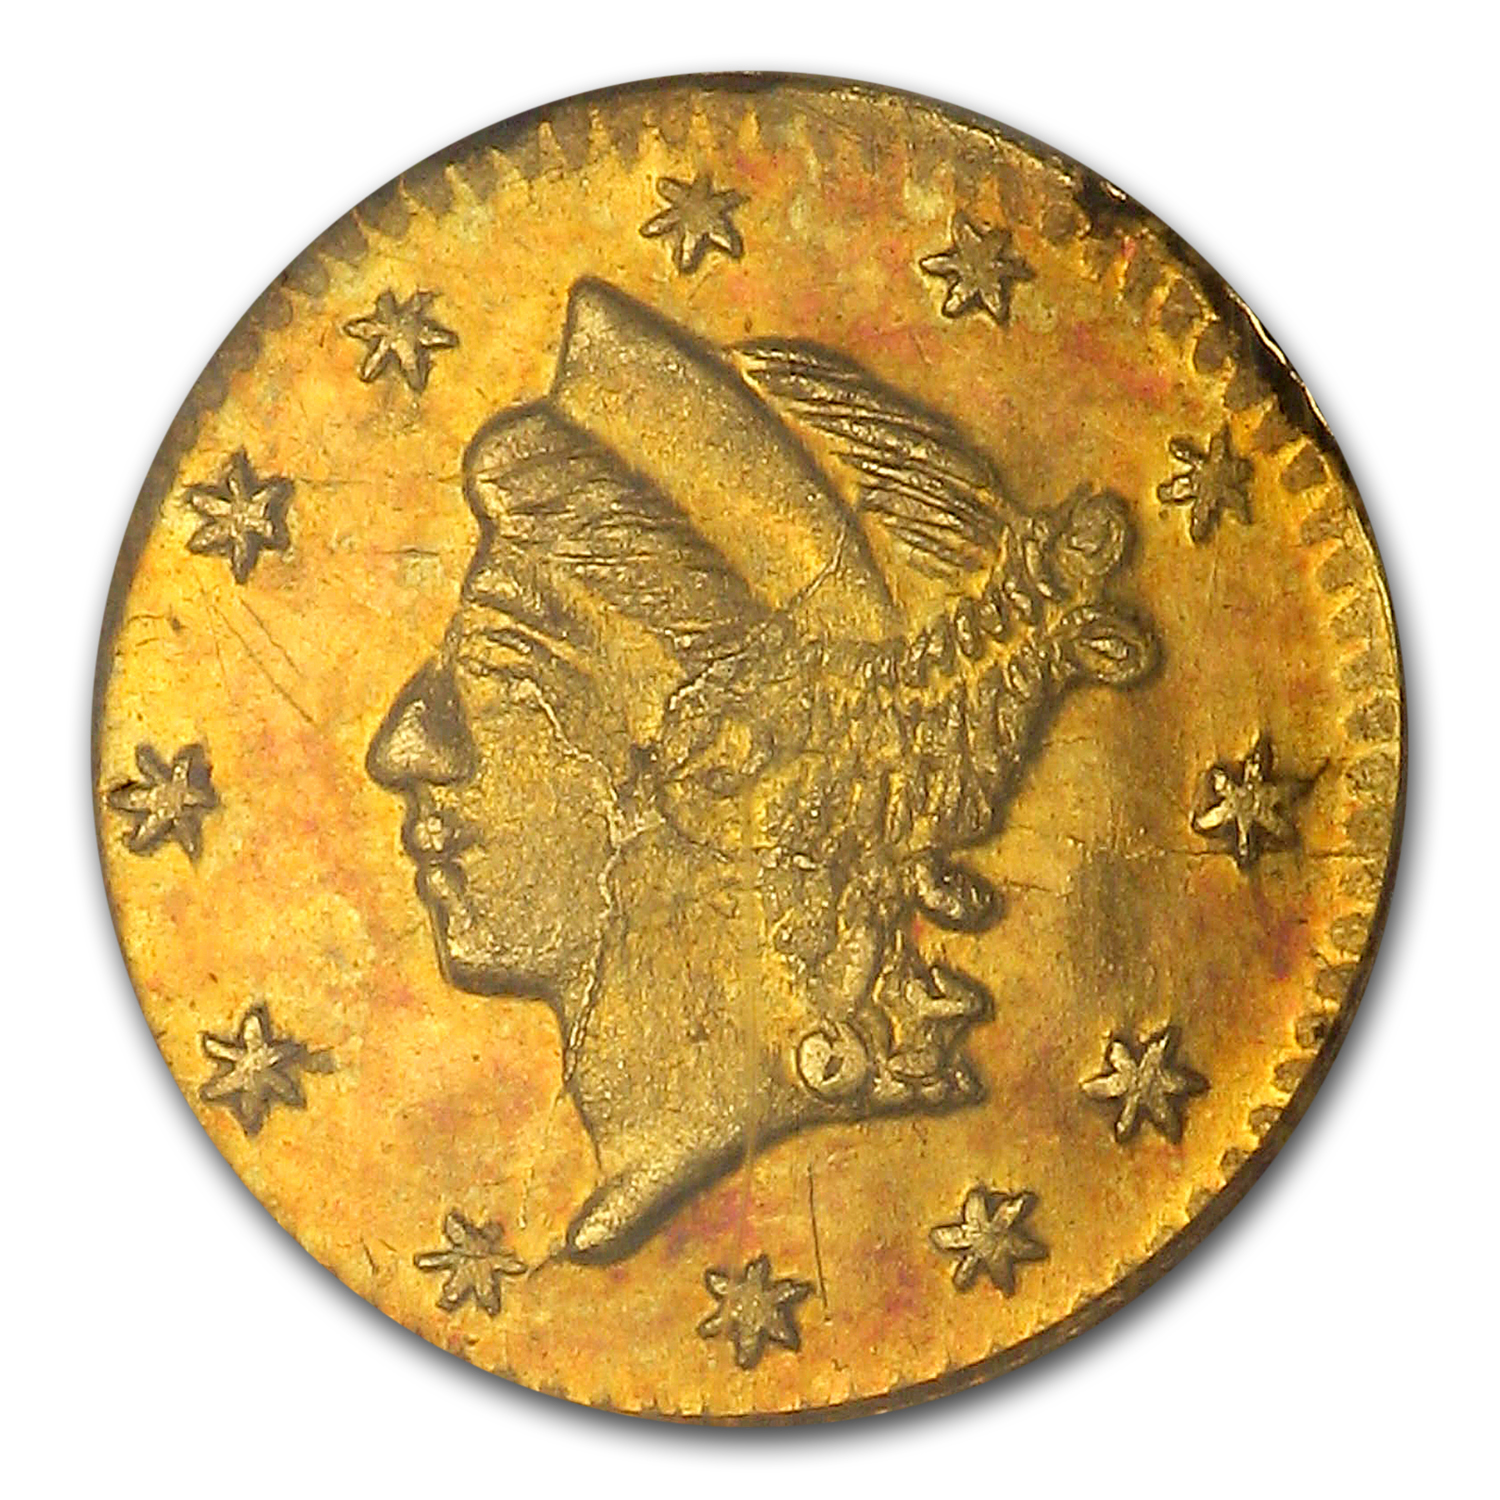 1860/50 BG-819 Liberty Round 25¢ Gold MS-62 NGC